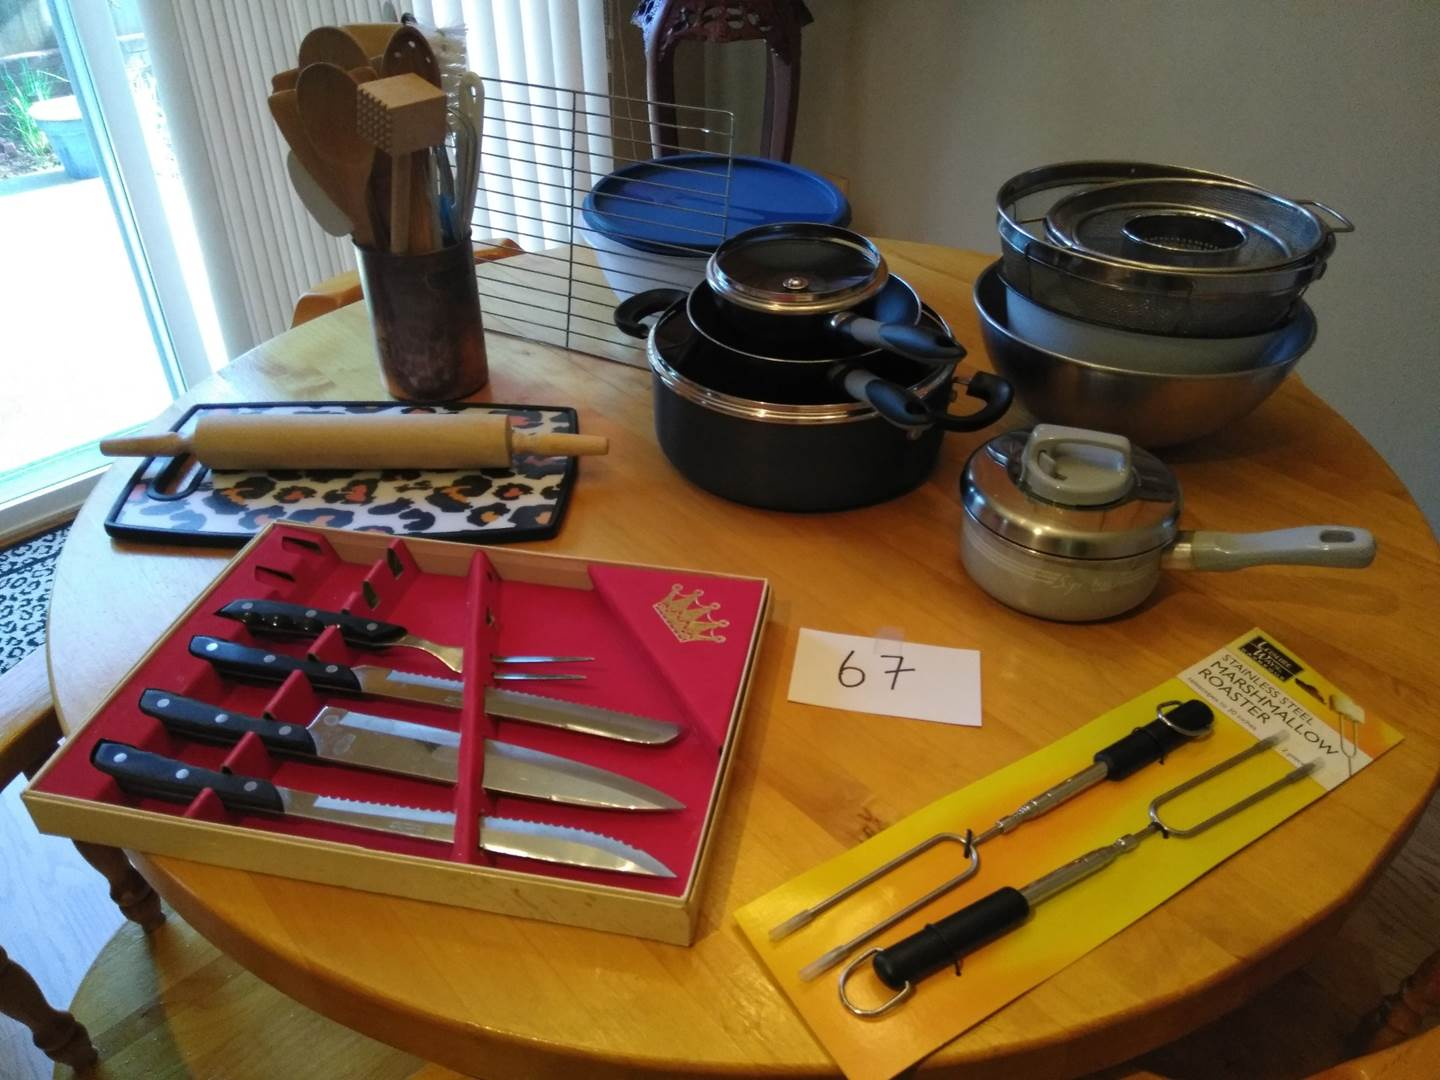 Lot # 67 - Pots & Pans, cutting board, rolling pin, copper tin w/wooden utensils, plastic bowl set, more (main image)